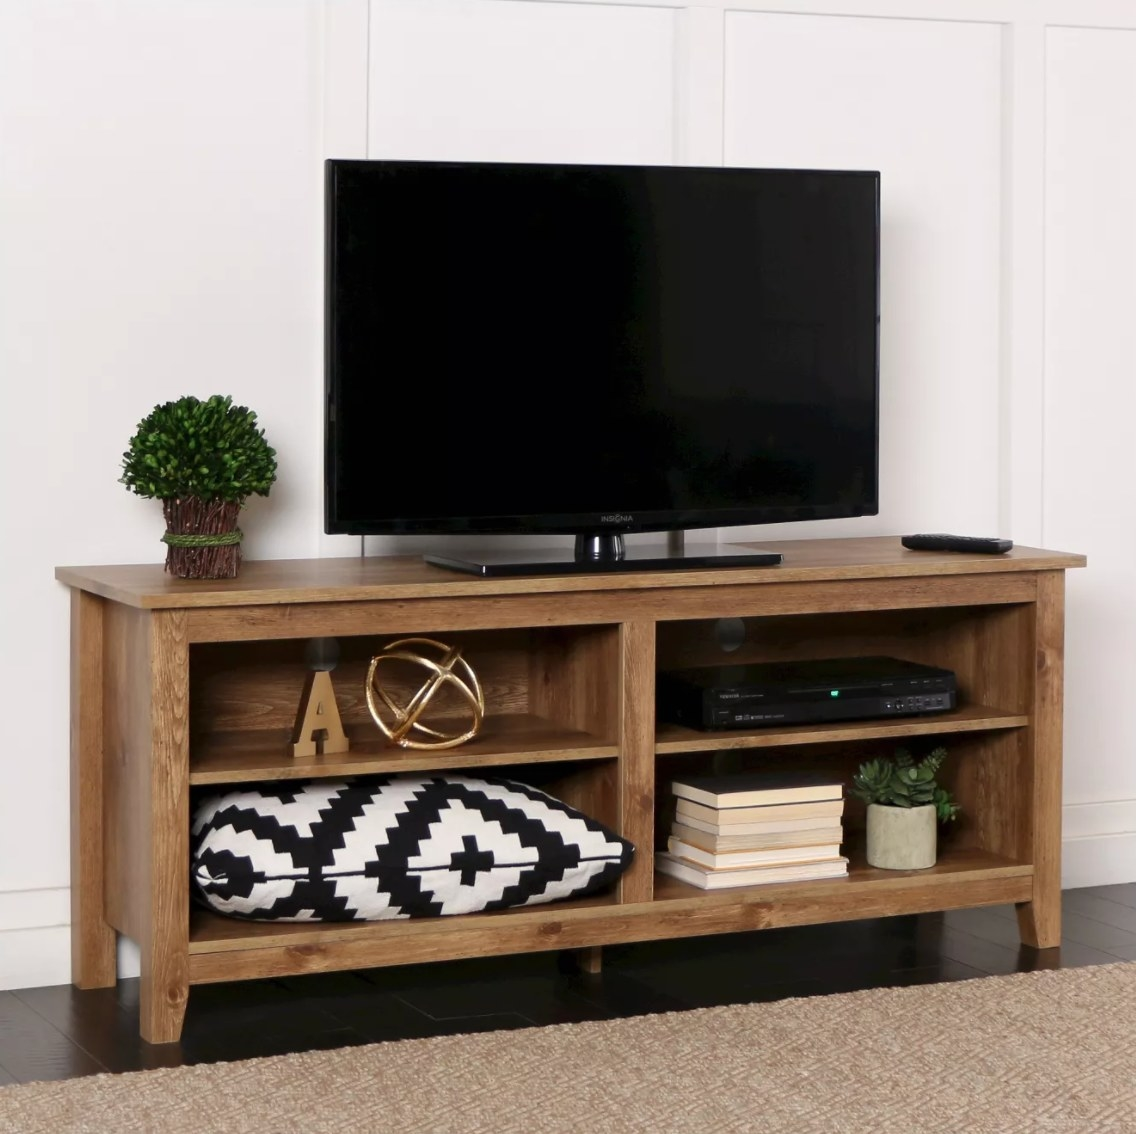 The rustic wood TV stand holding a flat-screen, pillows, books, and plants